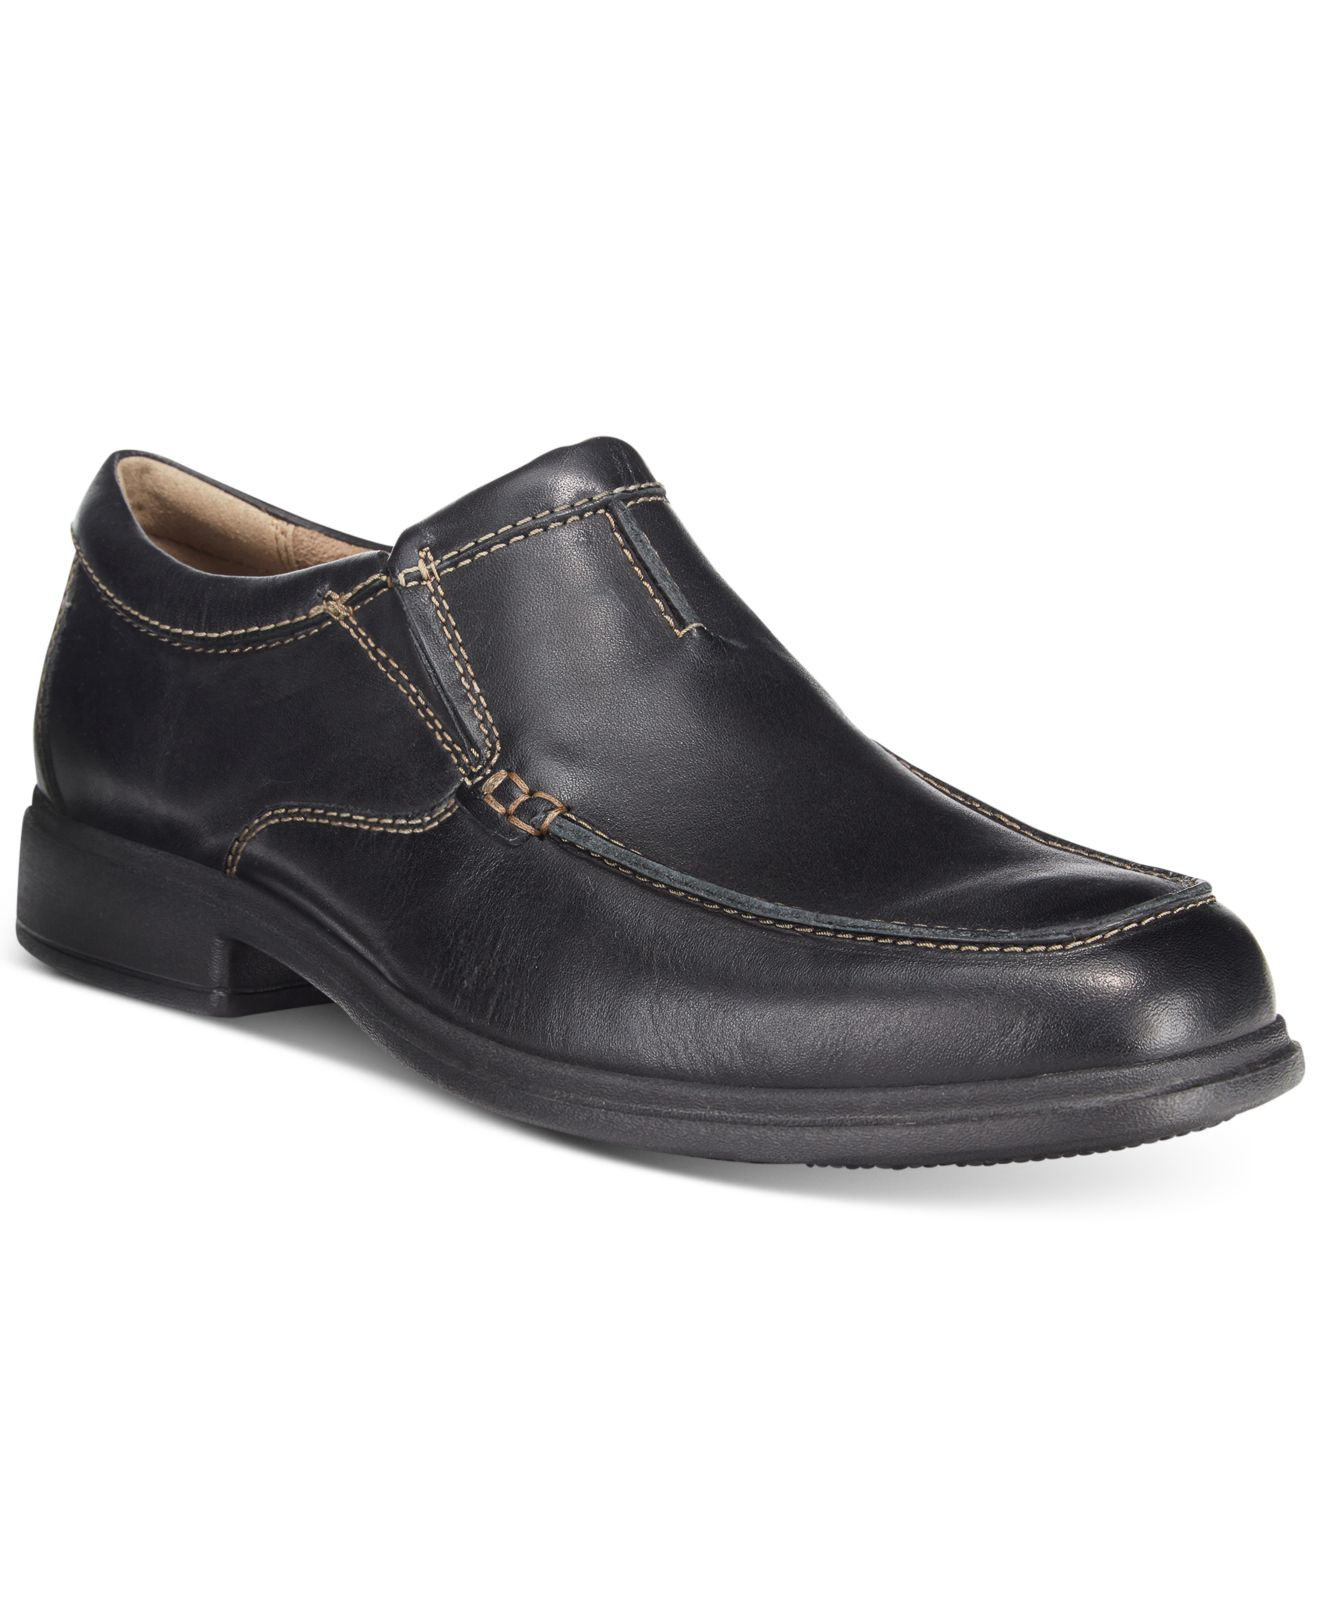 Bostonian Mens Black Leather Shoes